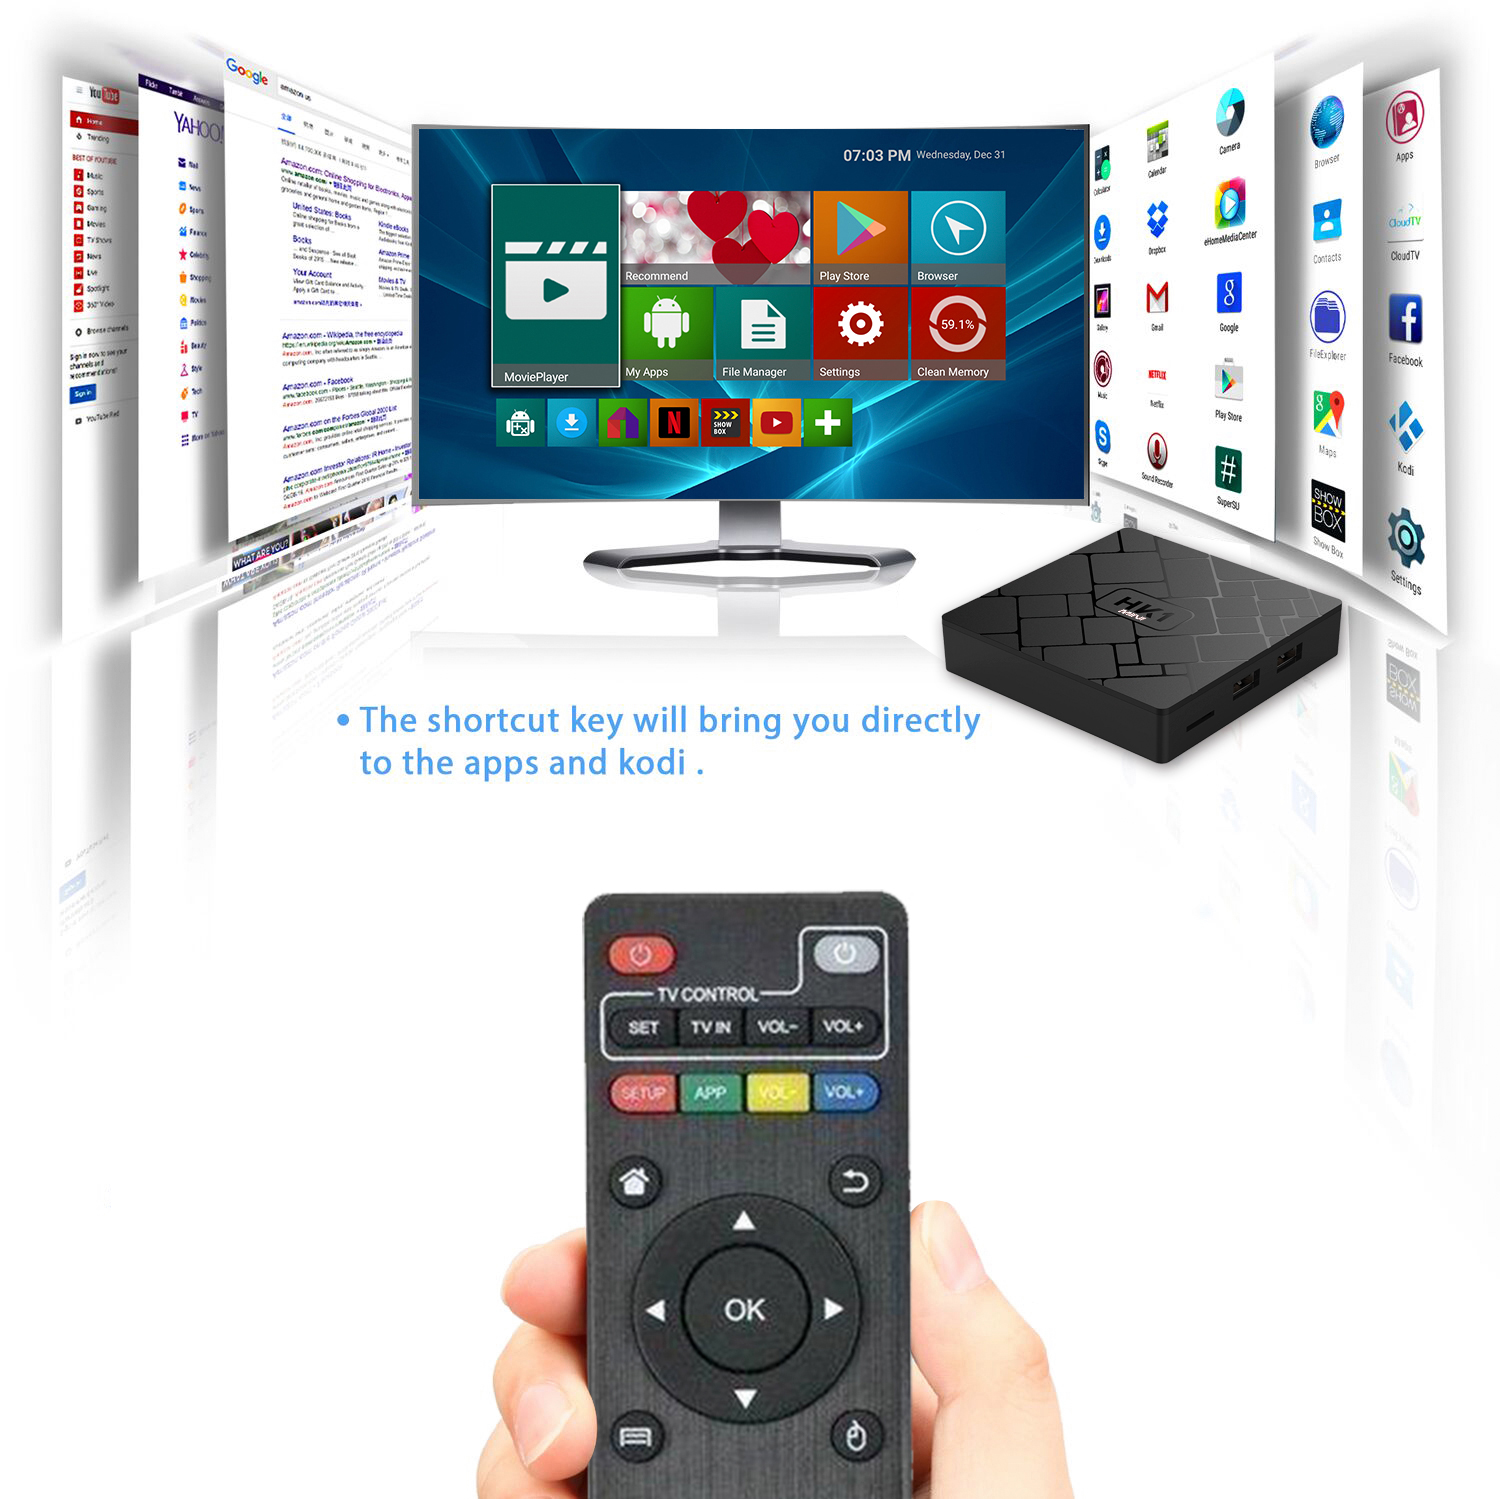 Rk3229 Android Support Mcott with Skype 8.1 Android 4K HK1 Mini Cloud Box Set Top Box Land Raspberry TV Box